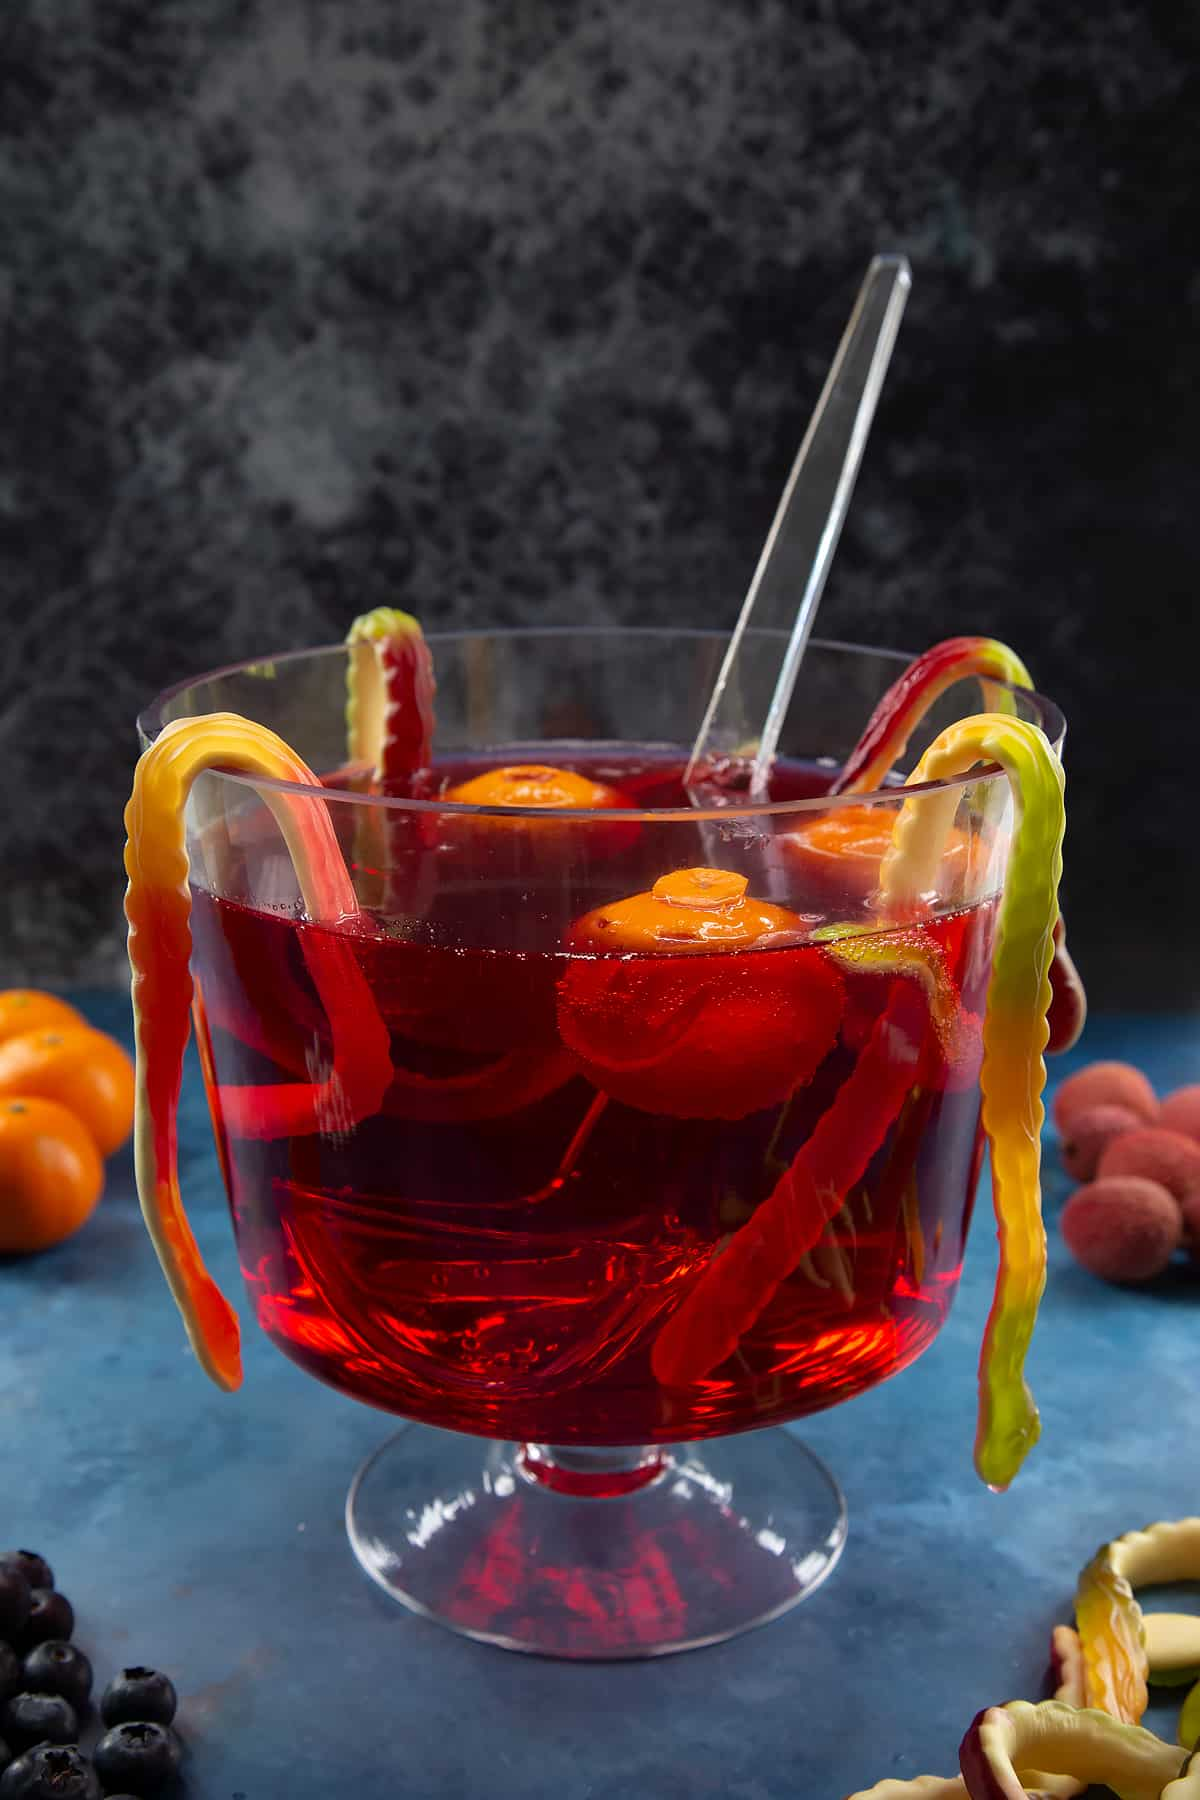 A glass punch bowl with ladle. It's filled with cranberry juice and lemonade. Jack'o'lantern clementines float in the liquid and gummy snakes hang around the bowl. Ingredients to make Halloween punch surround the bowl.